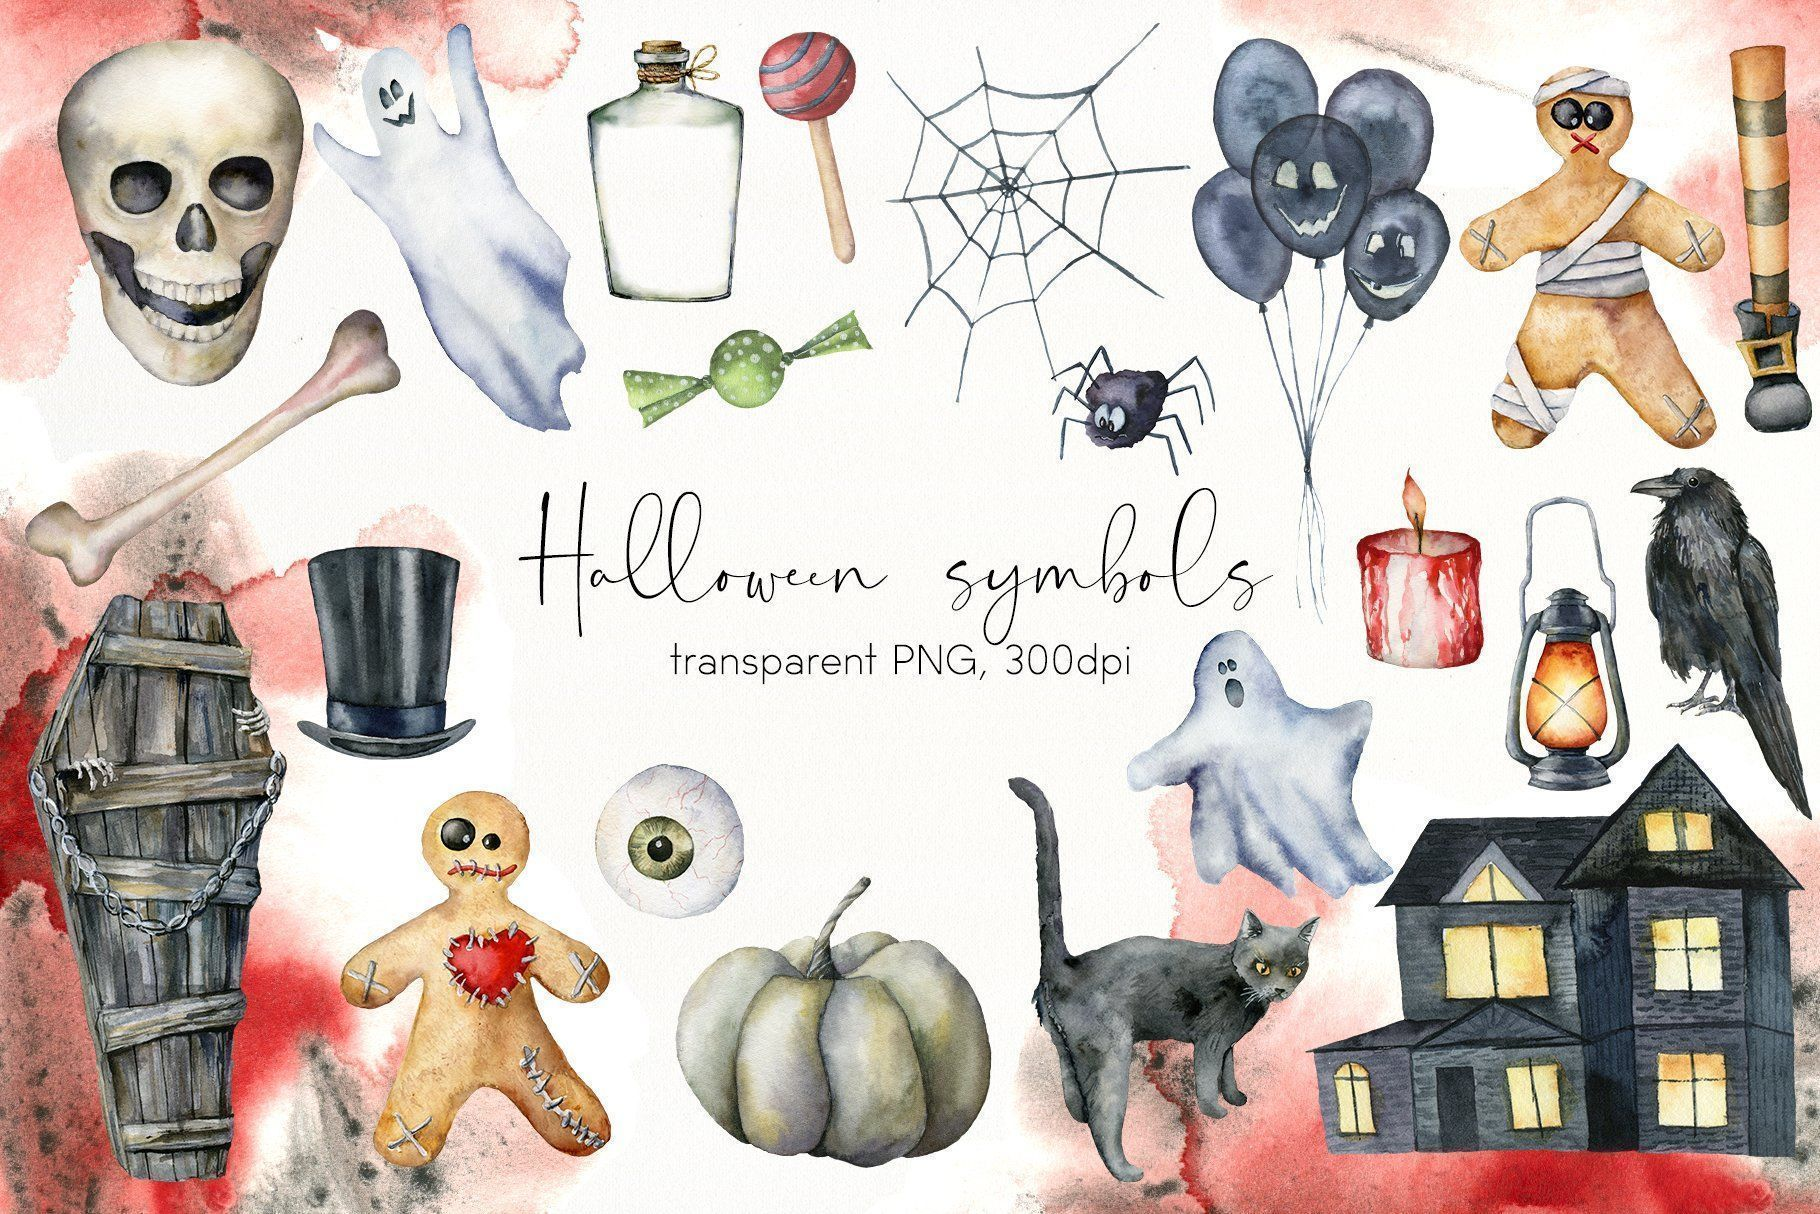 Happy Halloween night. Watercolor by Yuliya Derbisheva on @creativemarket #happyhalloweenschriftzug Happy Halloween night. Watercolor by Yuliya Derbisheva on @creativemarket #happyhalloweenschriftzug Happy Halloween night. Watercolor by Yuliya Derbisheva on @creativemarket #happyhalloweenschriftzug Happy Halloween night. Watercolor by Yuliya Derbisheva on @creativemarket #happyhalloweenschriftzug Happy Halloween night. Watercolor by Yuliya Derbisheva on @creativemarket #happyhalloweenschriftzug #happyhalloweenschriftzug